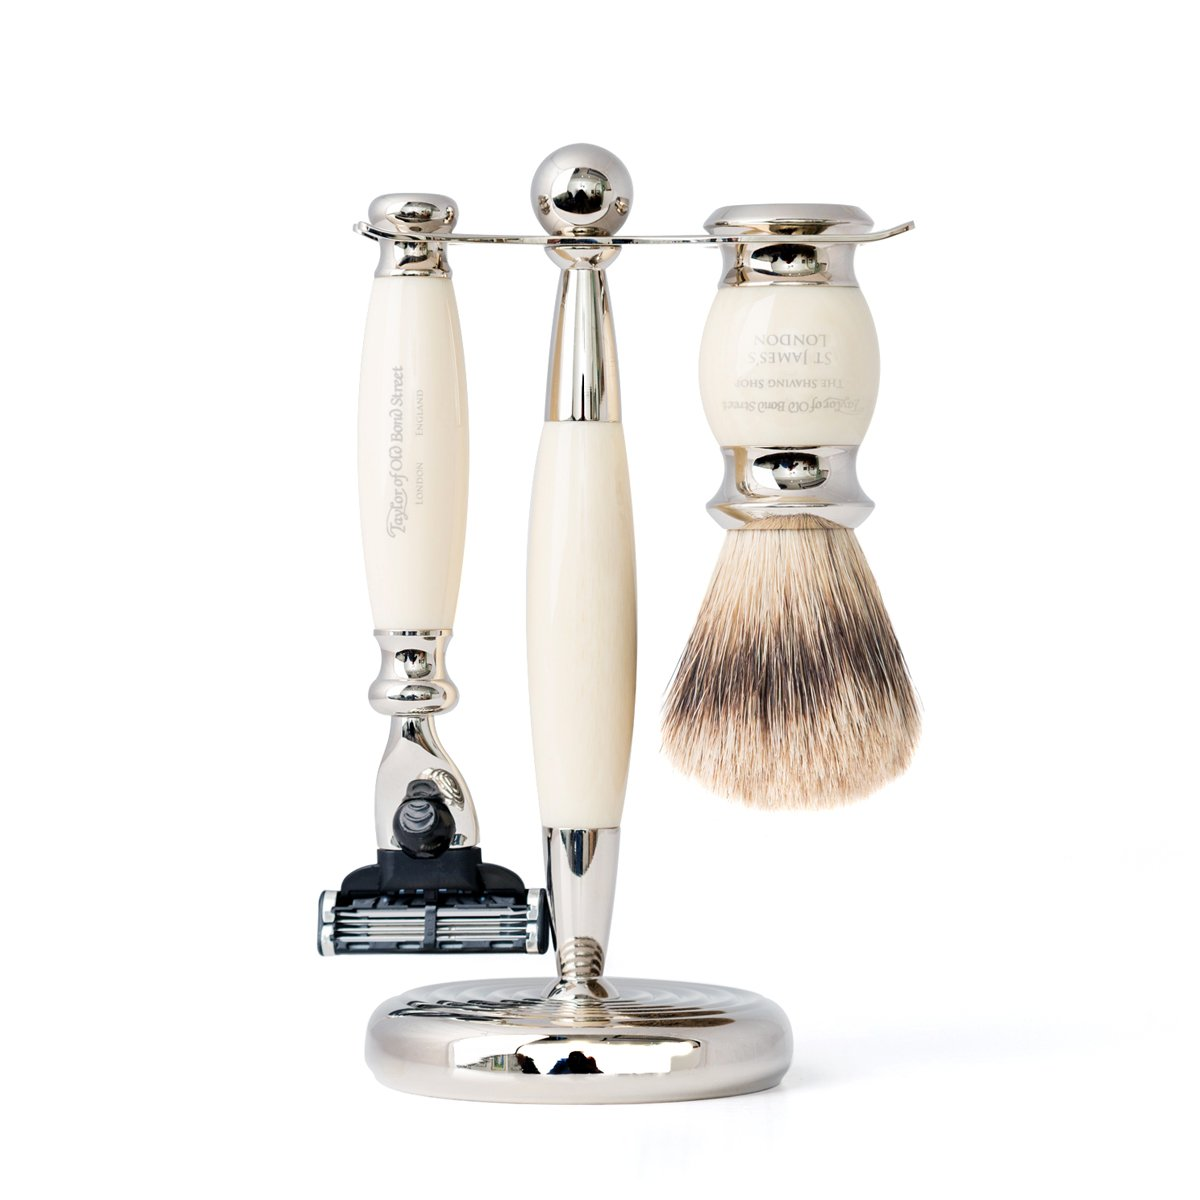 Super Mach3 Edwardian Shaving Set